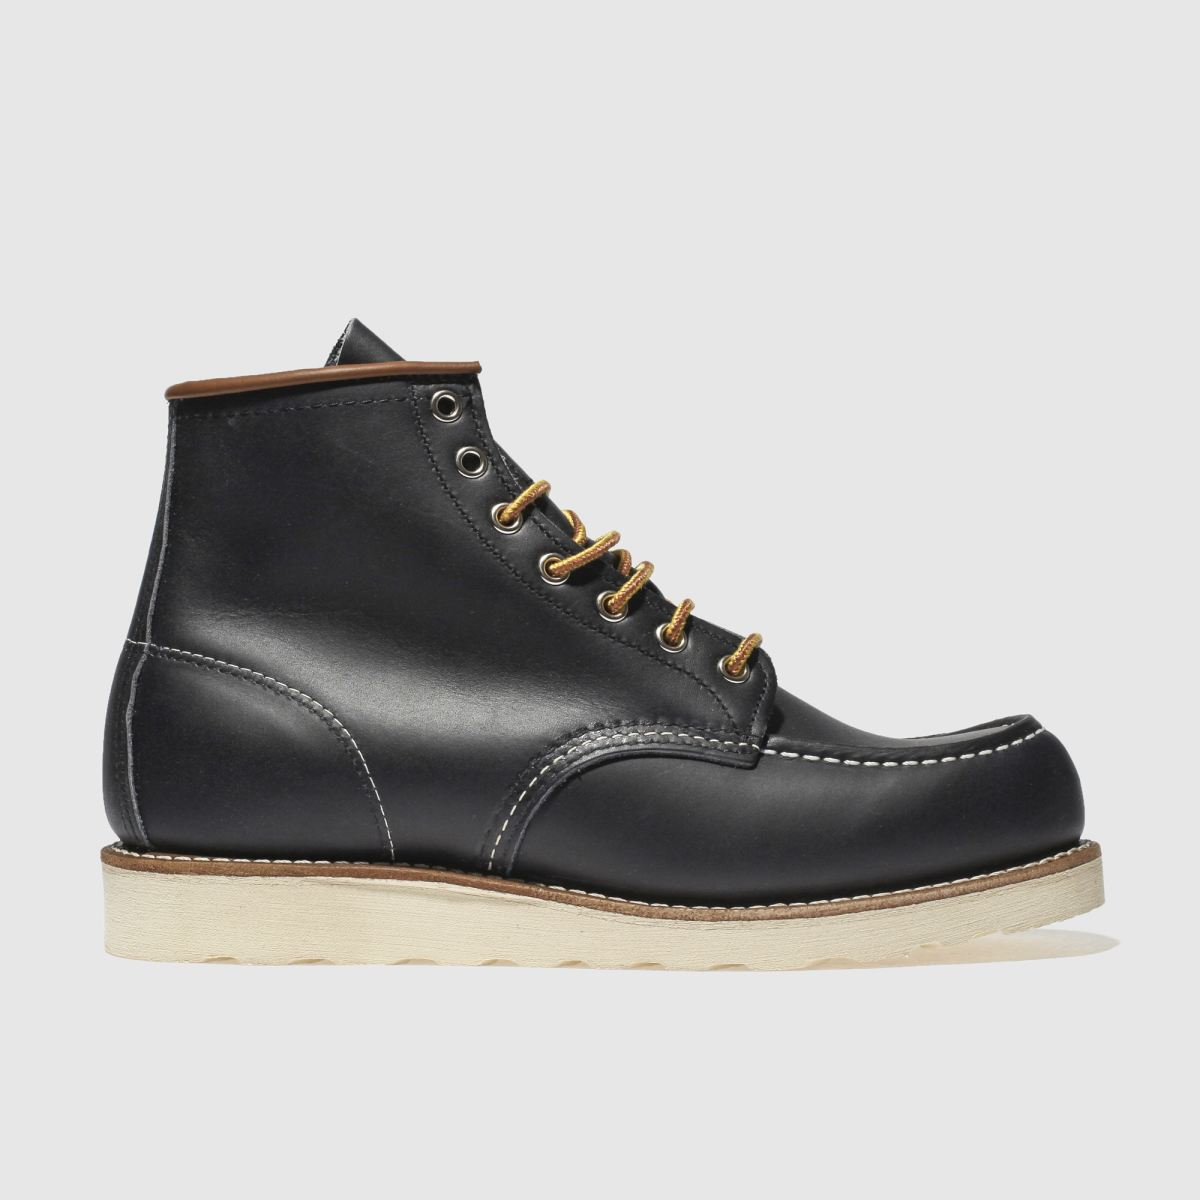 Red Wing Navy 6-inch Classic Moc Boots